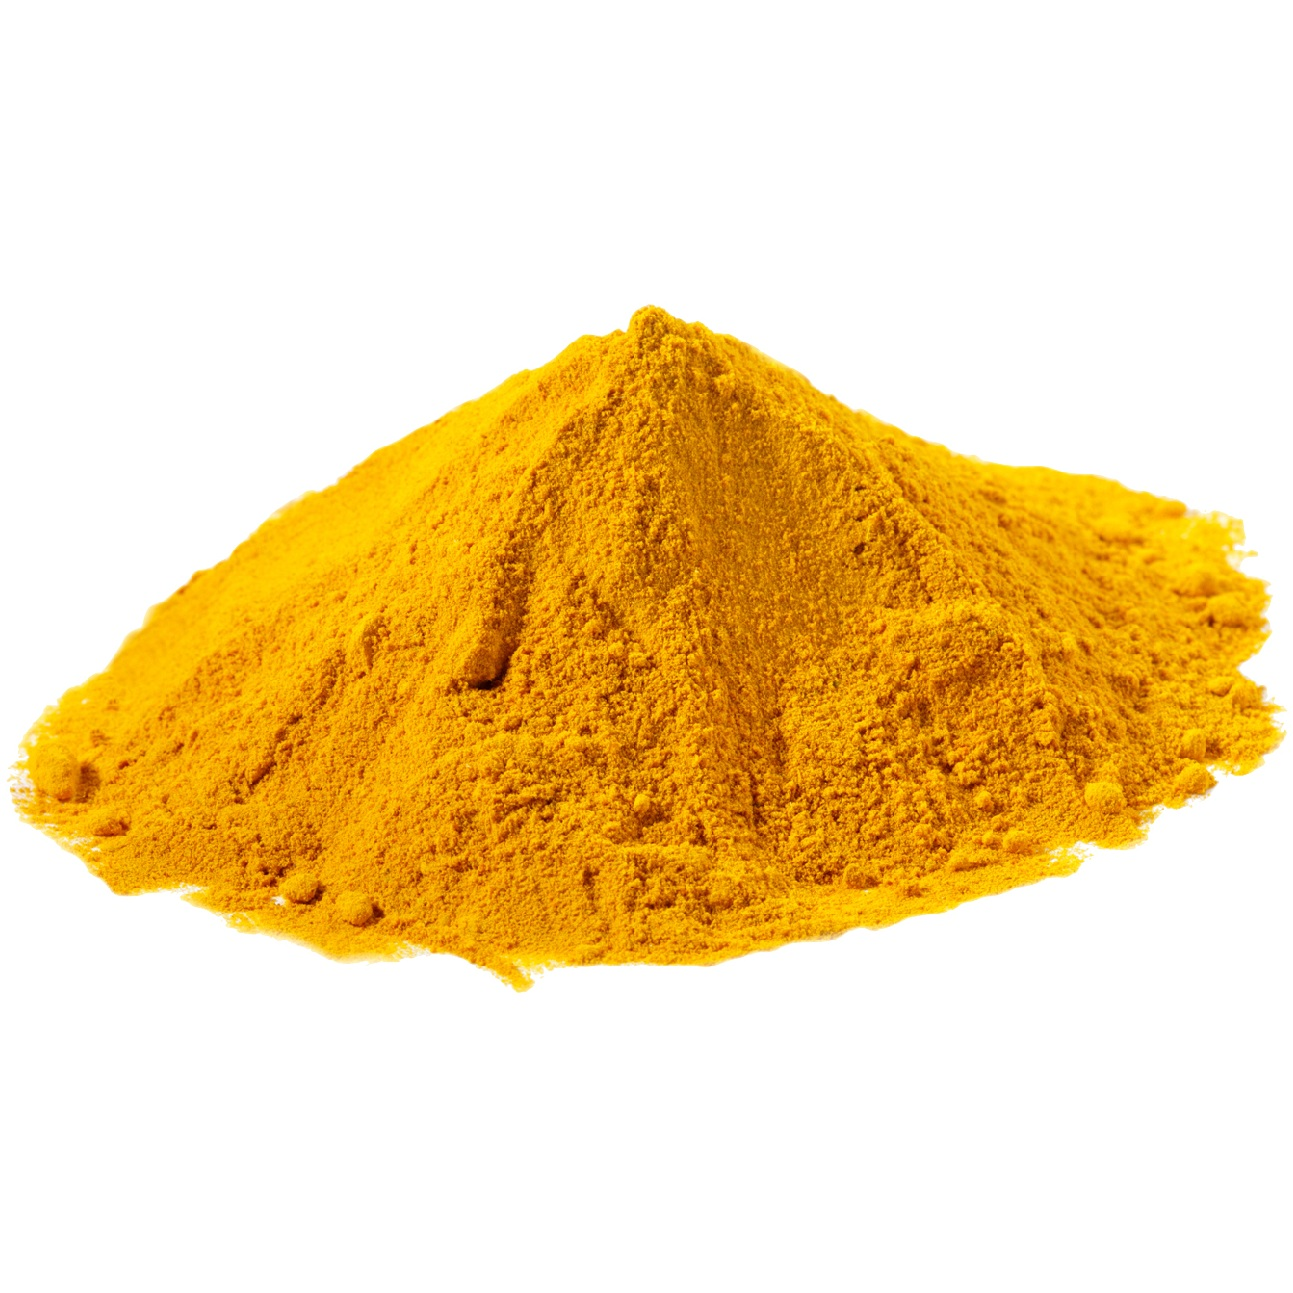 OP2.0™ Organic Sea Buckthorn Omega Formula Powder Product Shot